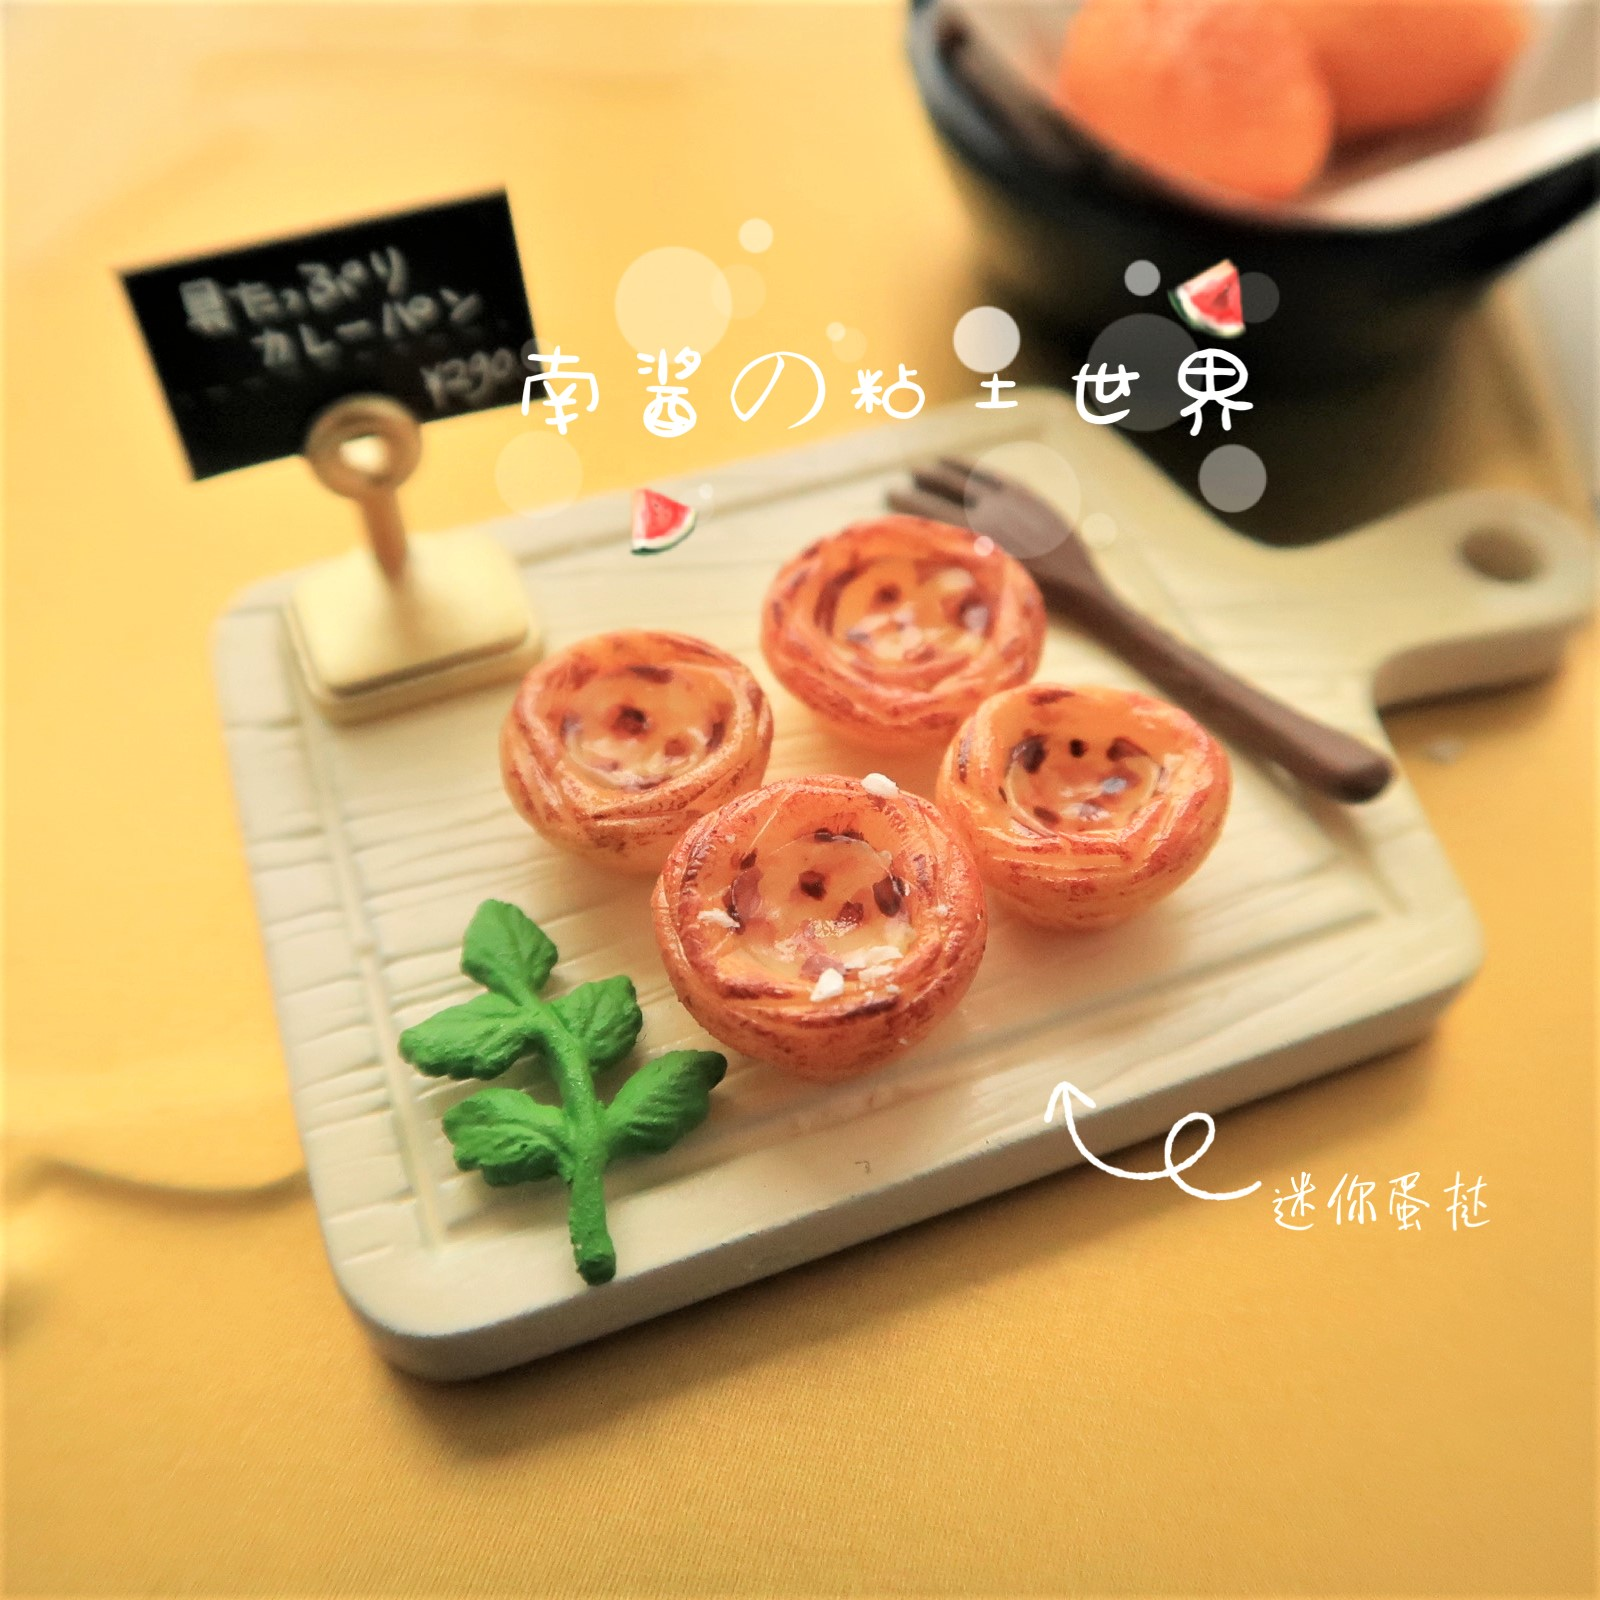 Miniature food and hand made egg tarts ob11 Mini scene 12 points 6 points doll house accessories BJD